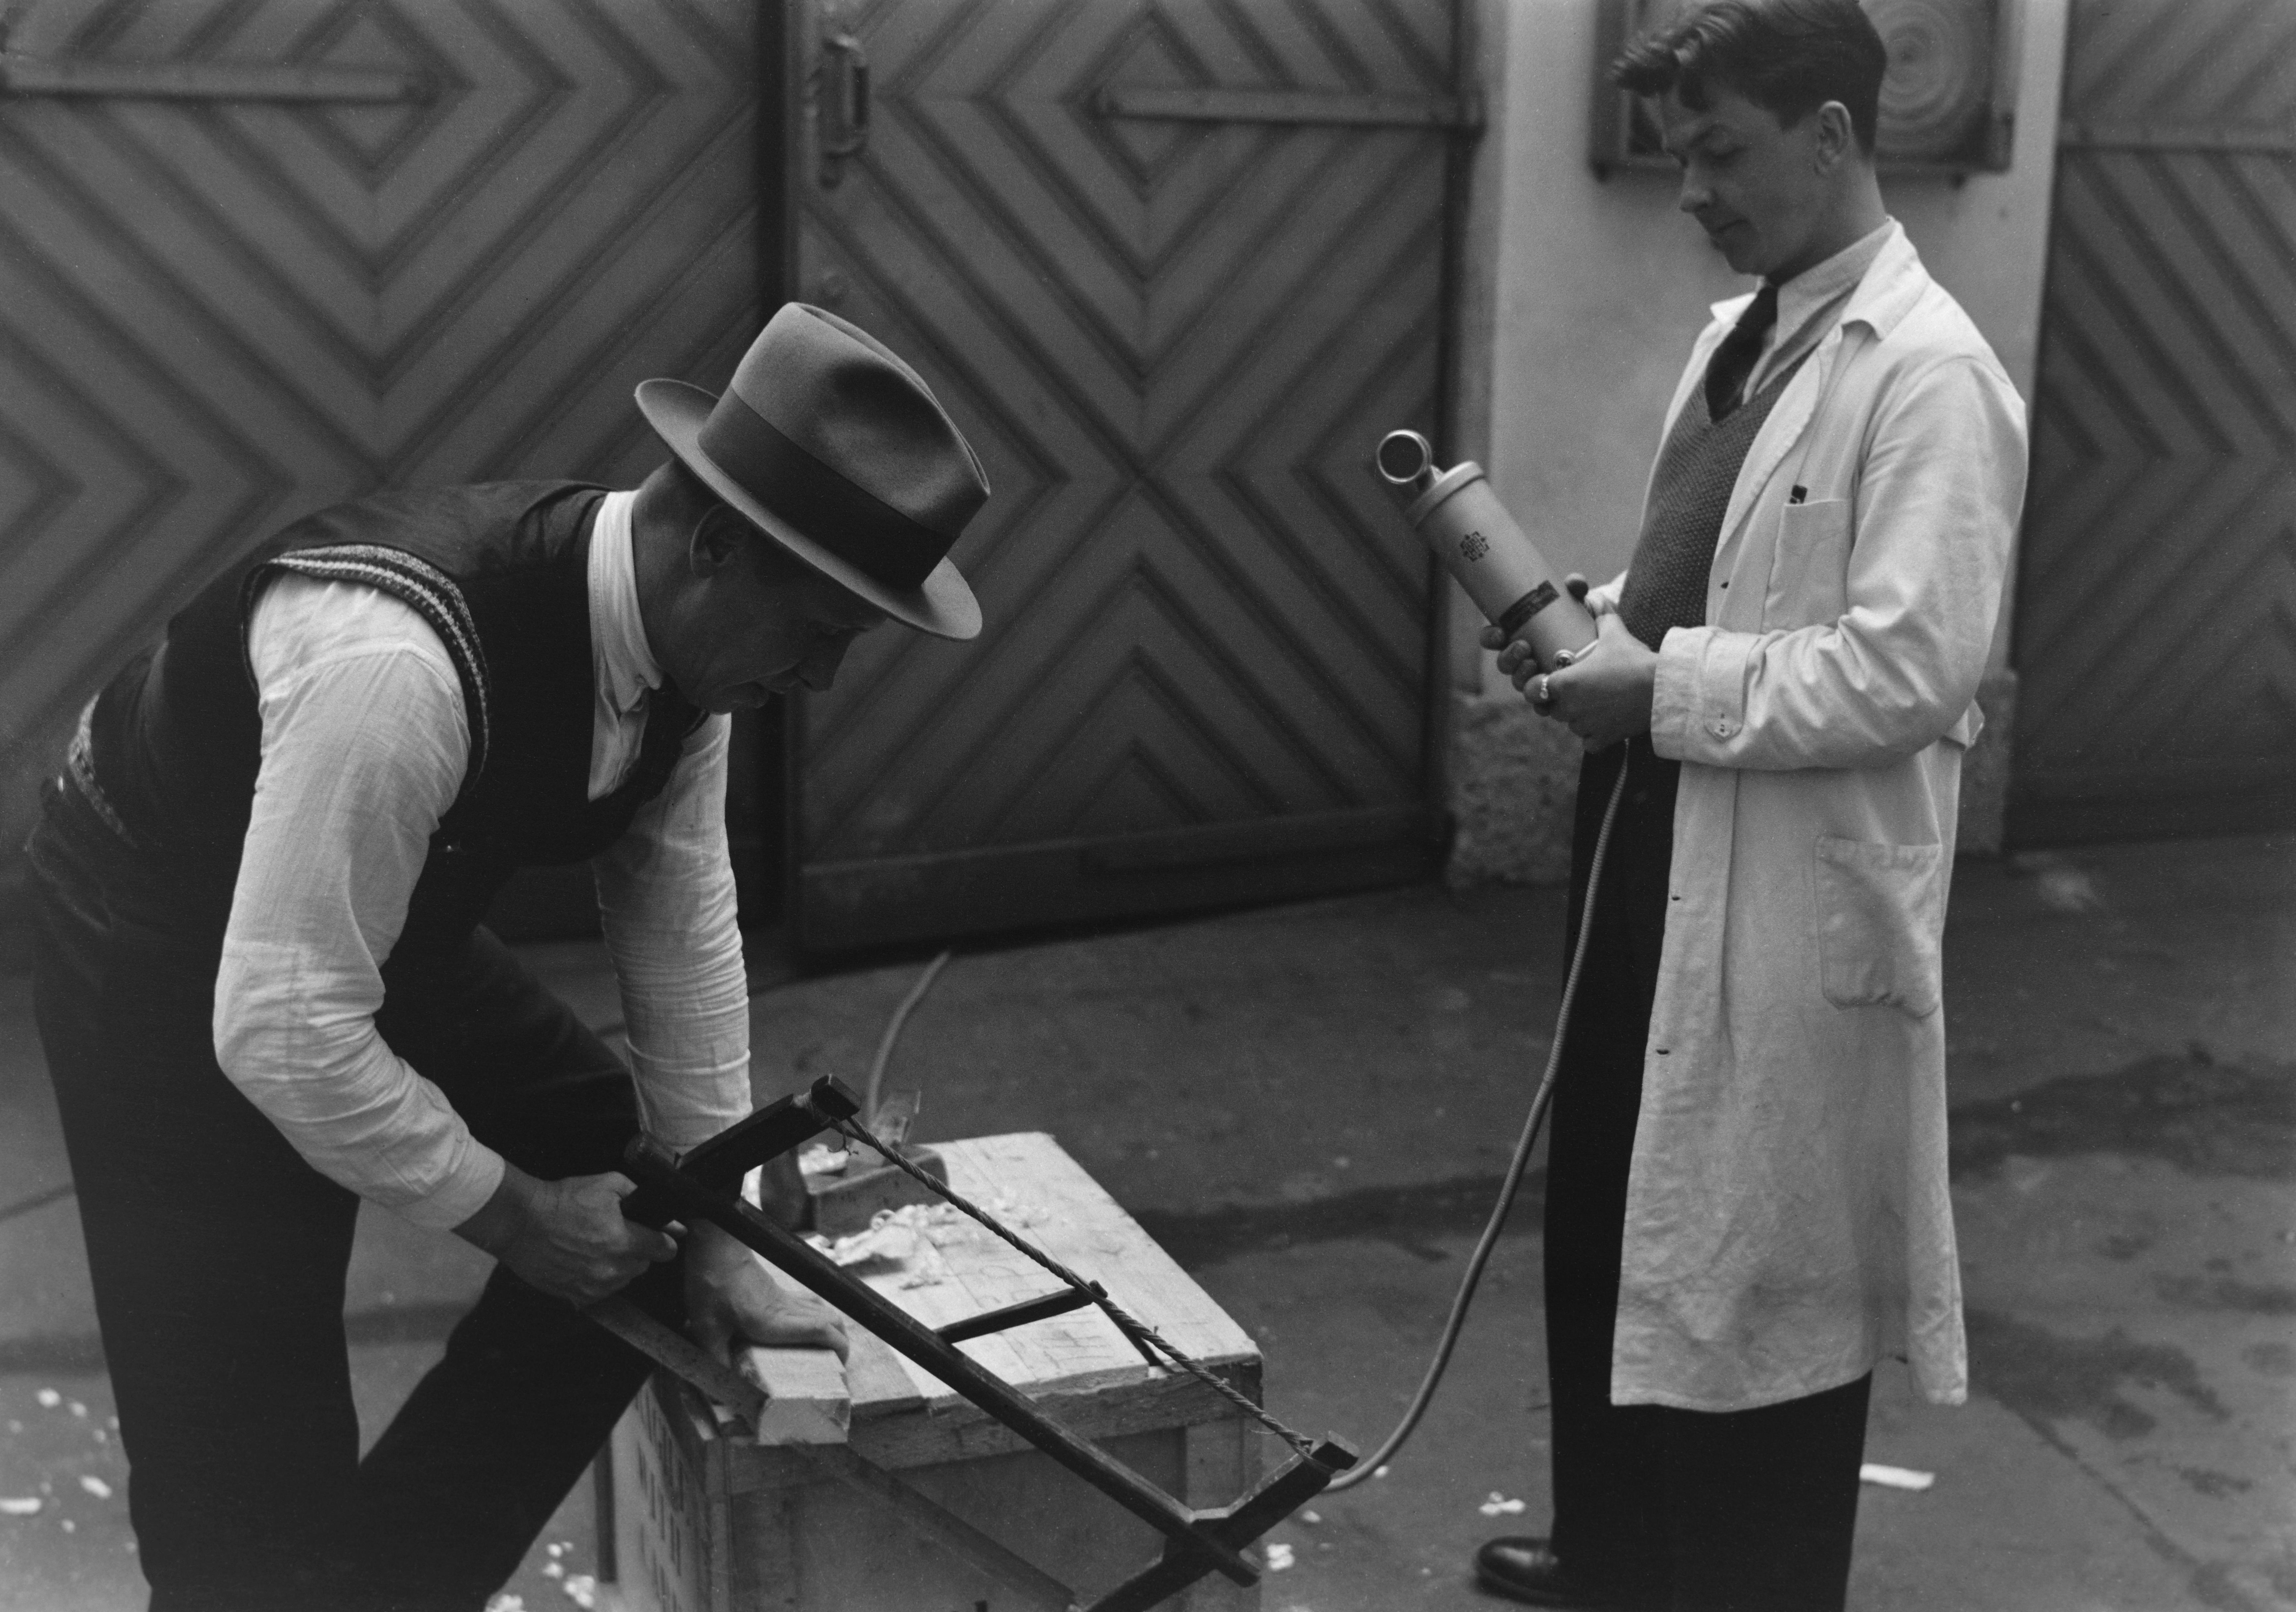 File:A man is recording sound effects, 1930s jpg - Wikimedia